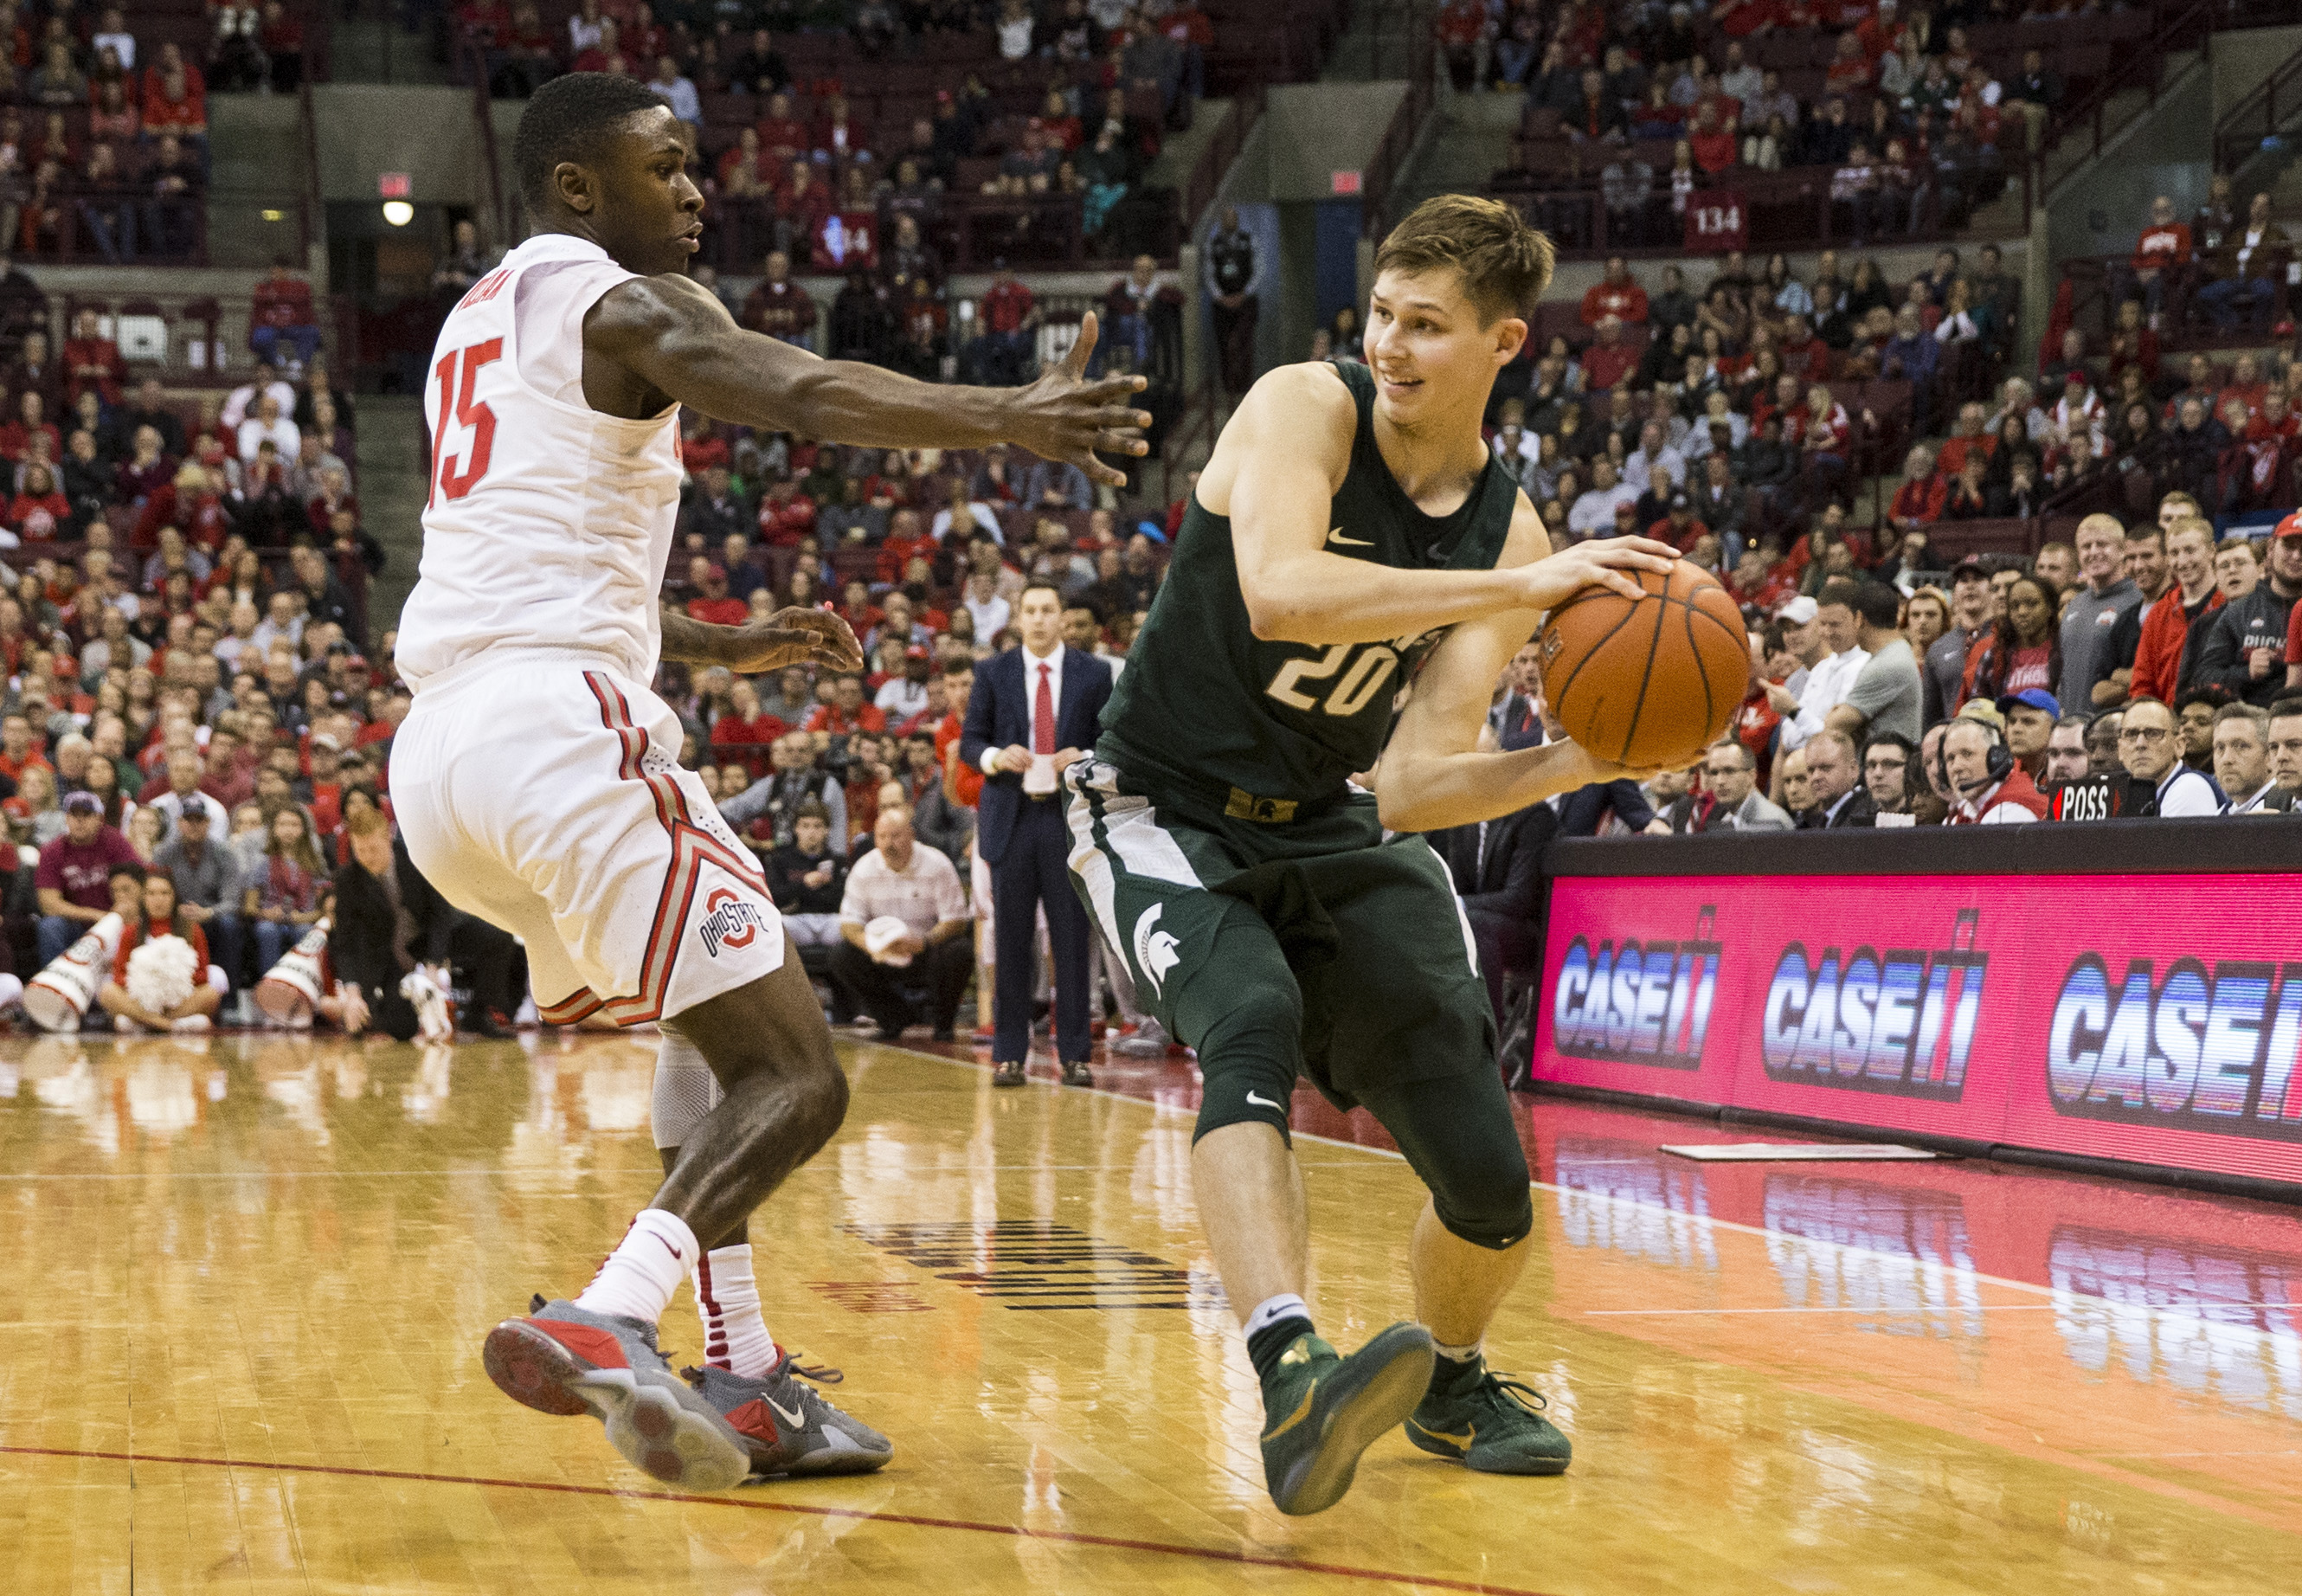 Jan 15, 2017; Columbus, OH, USA; Michigan State Spartans guard Matt McQuaid (20) looks to pass around Ohio State Buckeyes guard Kam Williams (15) at Value City Arena. Ohio State won the game 72-67. Mandatory Credit: Greg Bartram-USA TODAY Sports